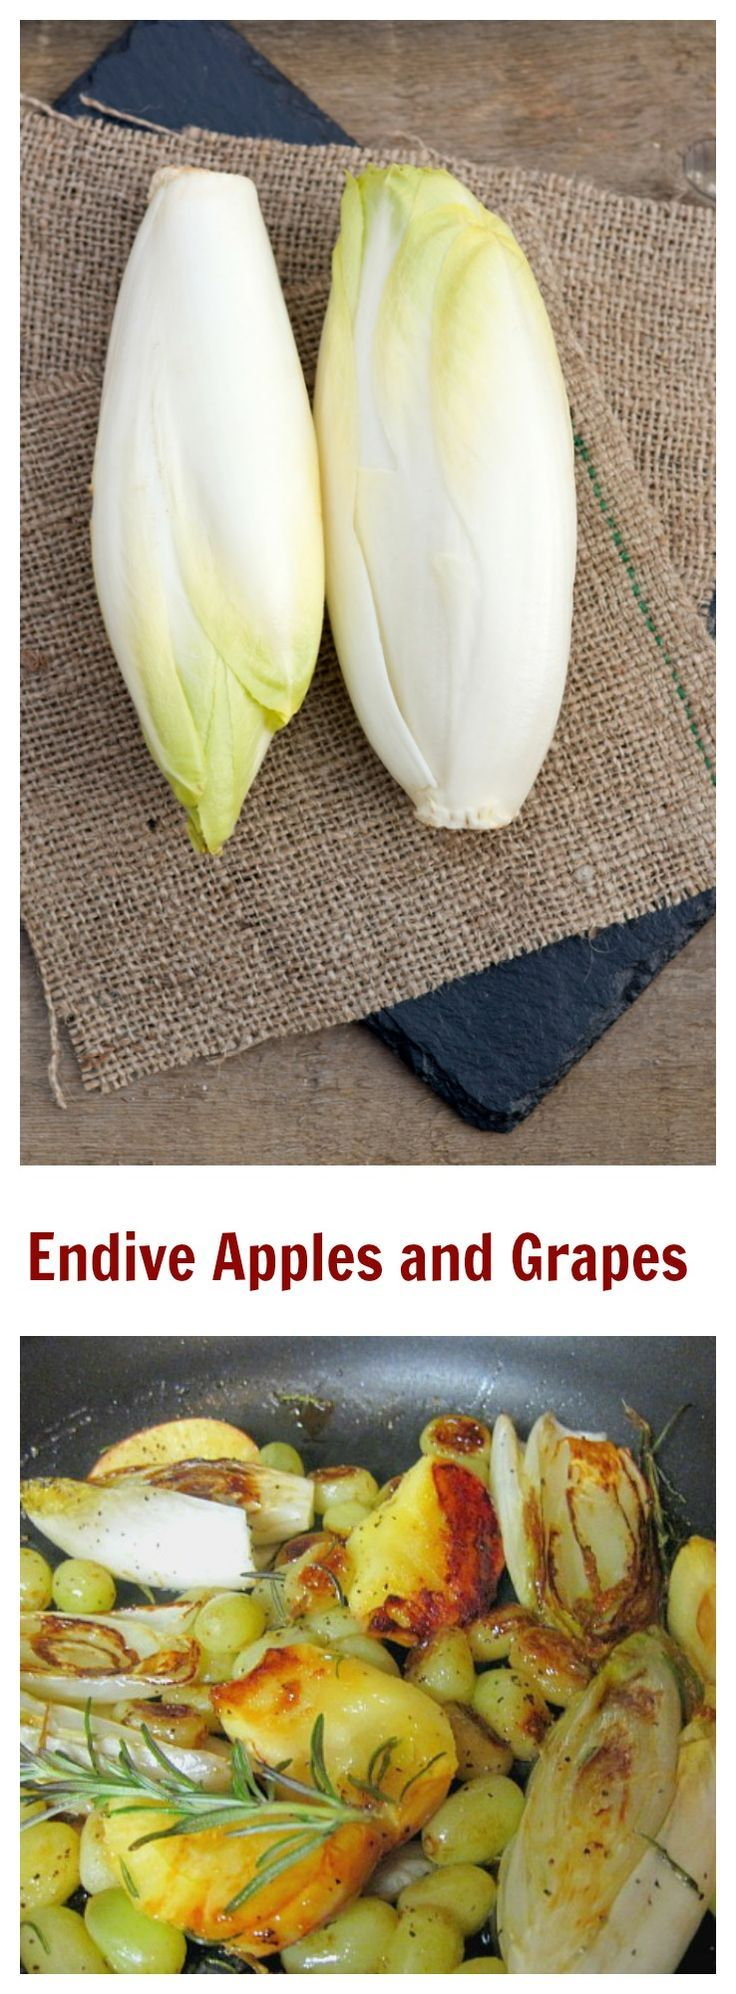 Pan Roasted Endive Recipe with Apples and Grapes. The bitter endive retains its flavor and the grapes and apples become even sweeter. Easy, unique side dish recipe. via @lannisam